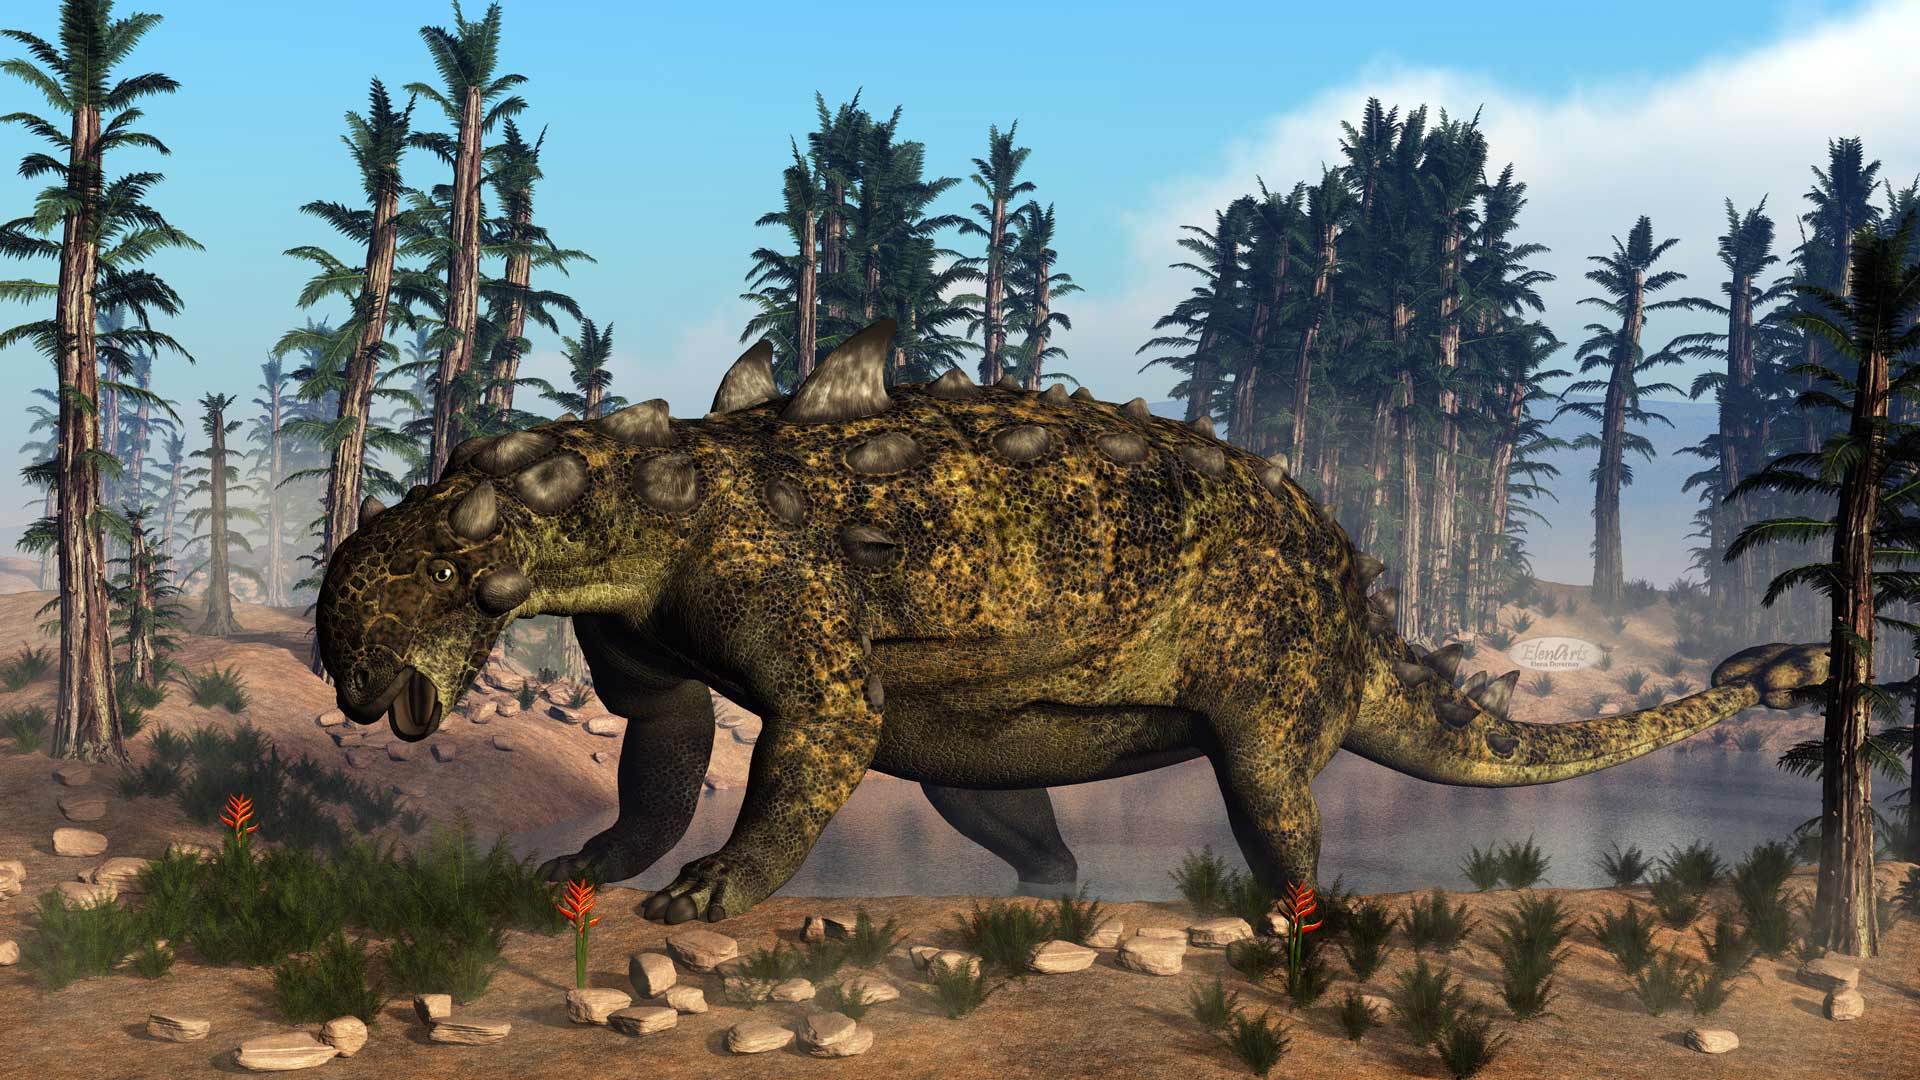 Euoplocephalus dinosaur walking toward small vegetation to eat it by day - 3D render